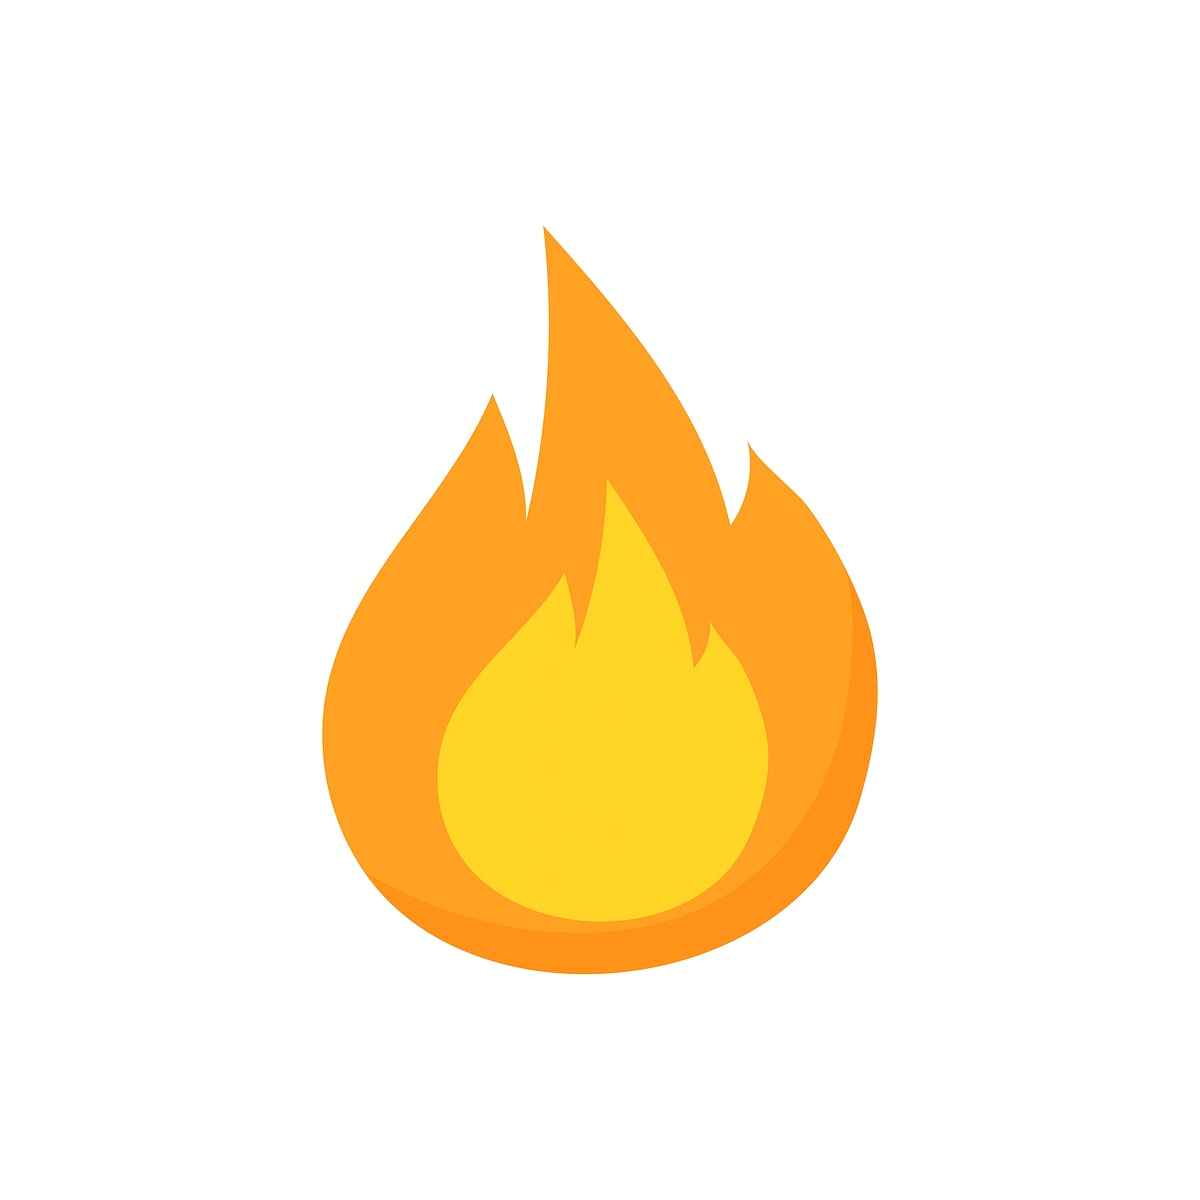 Single flame isolated graphic illustration